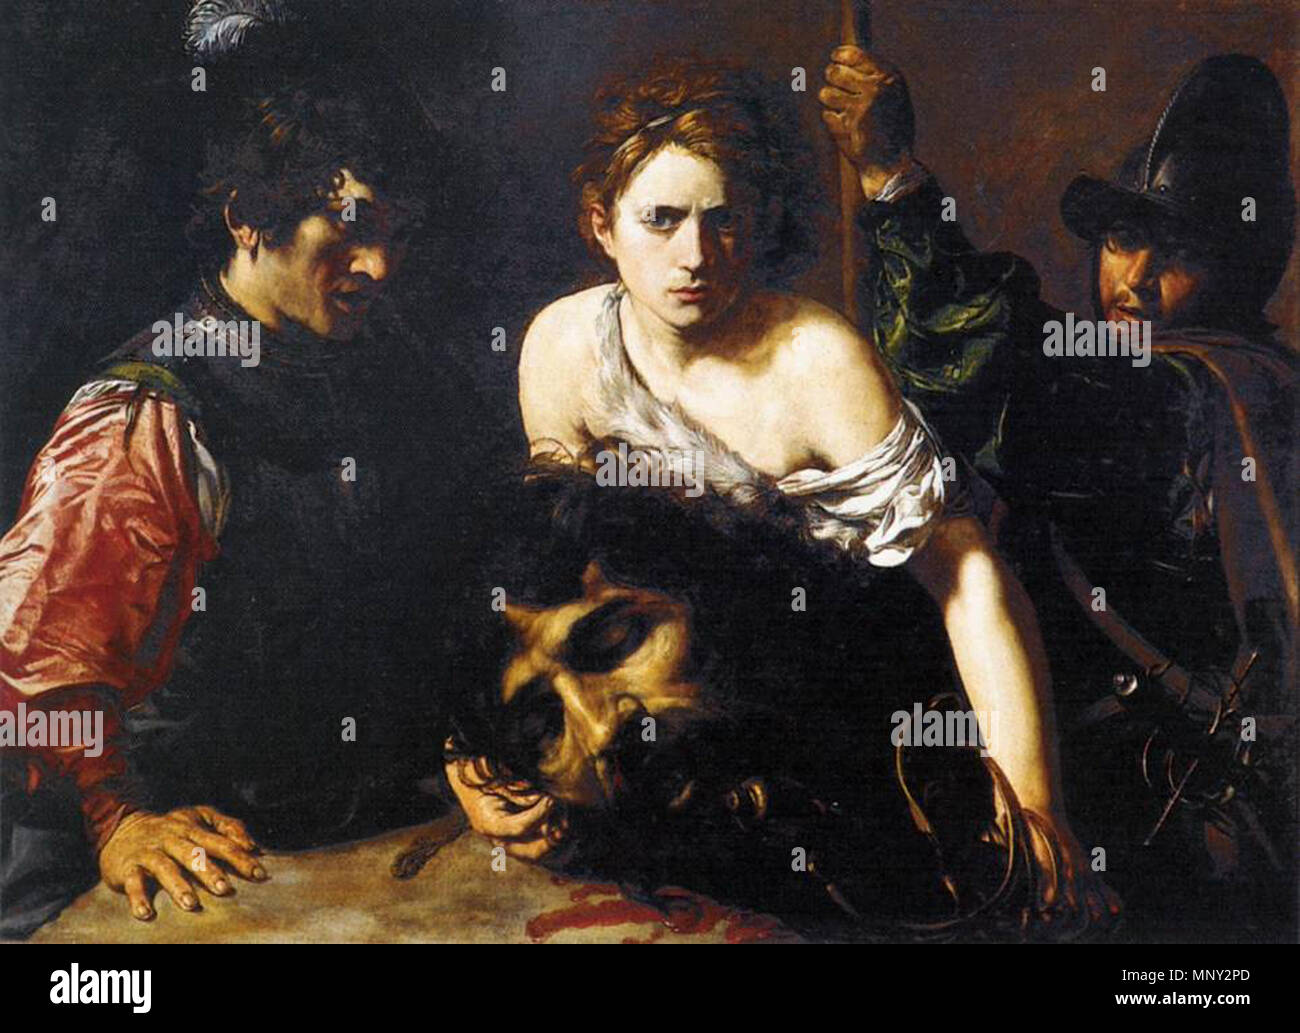 http://www.wga.hu/art/v/valentin/davidgol.jpg    . 'David with the Head of Goliath and Two Soldiers', Oil on canvas, 99 x 134 cm Museo Thyssen-Bornemisza, Madrid . between 1620 and 1622.   Valentin de Boulogne (1591–1632)  Alternative names Jean Valentin Le Valentin  Description French painter  Date of birth/death 3 January 1591 (baptised) 20 August 1632 (buried)  Location of birth/death Coulommiers Rome  Work location Rome (1612-1632)  Authority control  : Q1337275 VIAF:120746211 ISNI:0000 0001 1580 793X ULAN:500021073 LCCN:no90018840 WGA:VALENTIN DE BOULOGNE WorldCat 1218 Valentin de - Stock Image